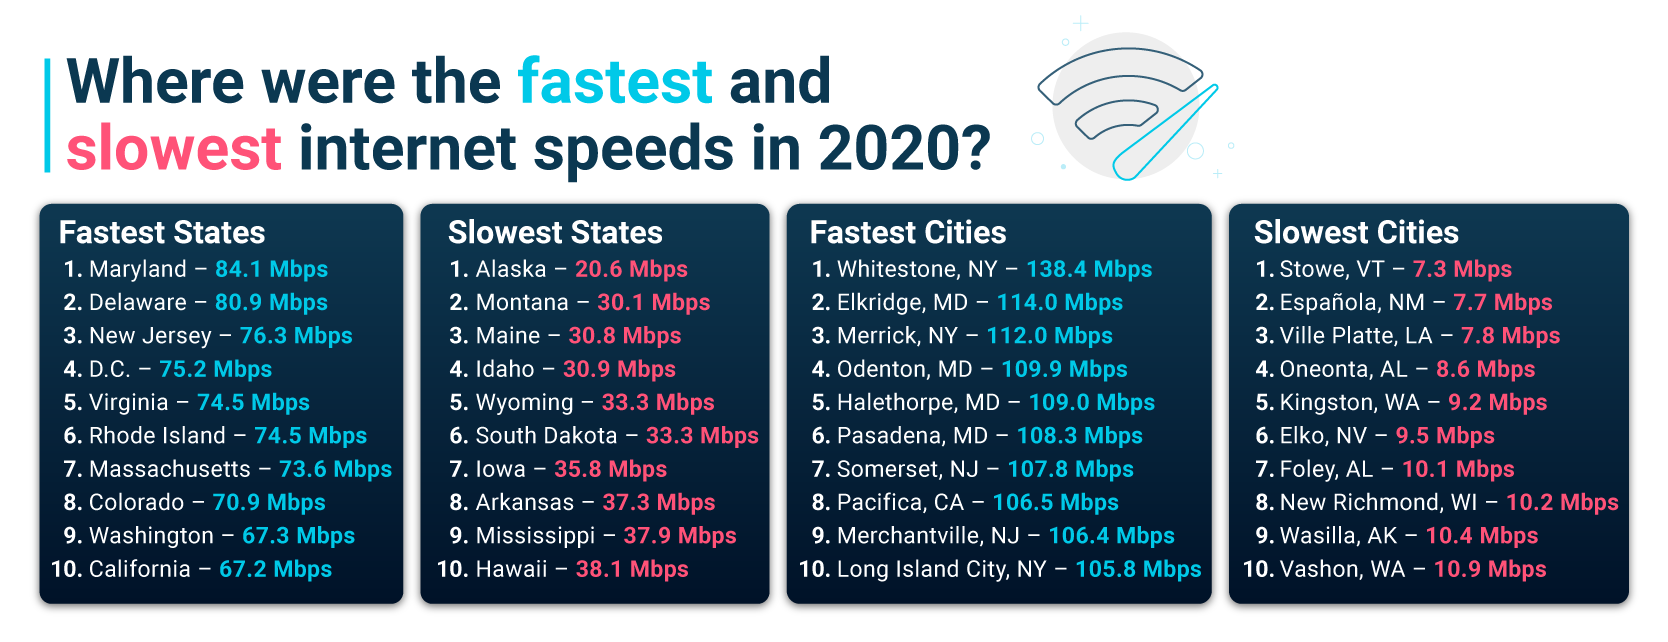 Fastest and slowest internet speeds